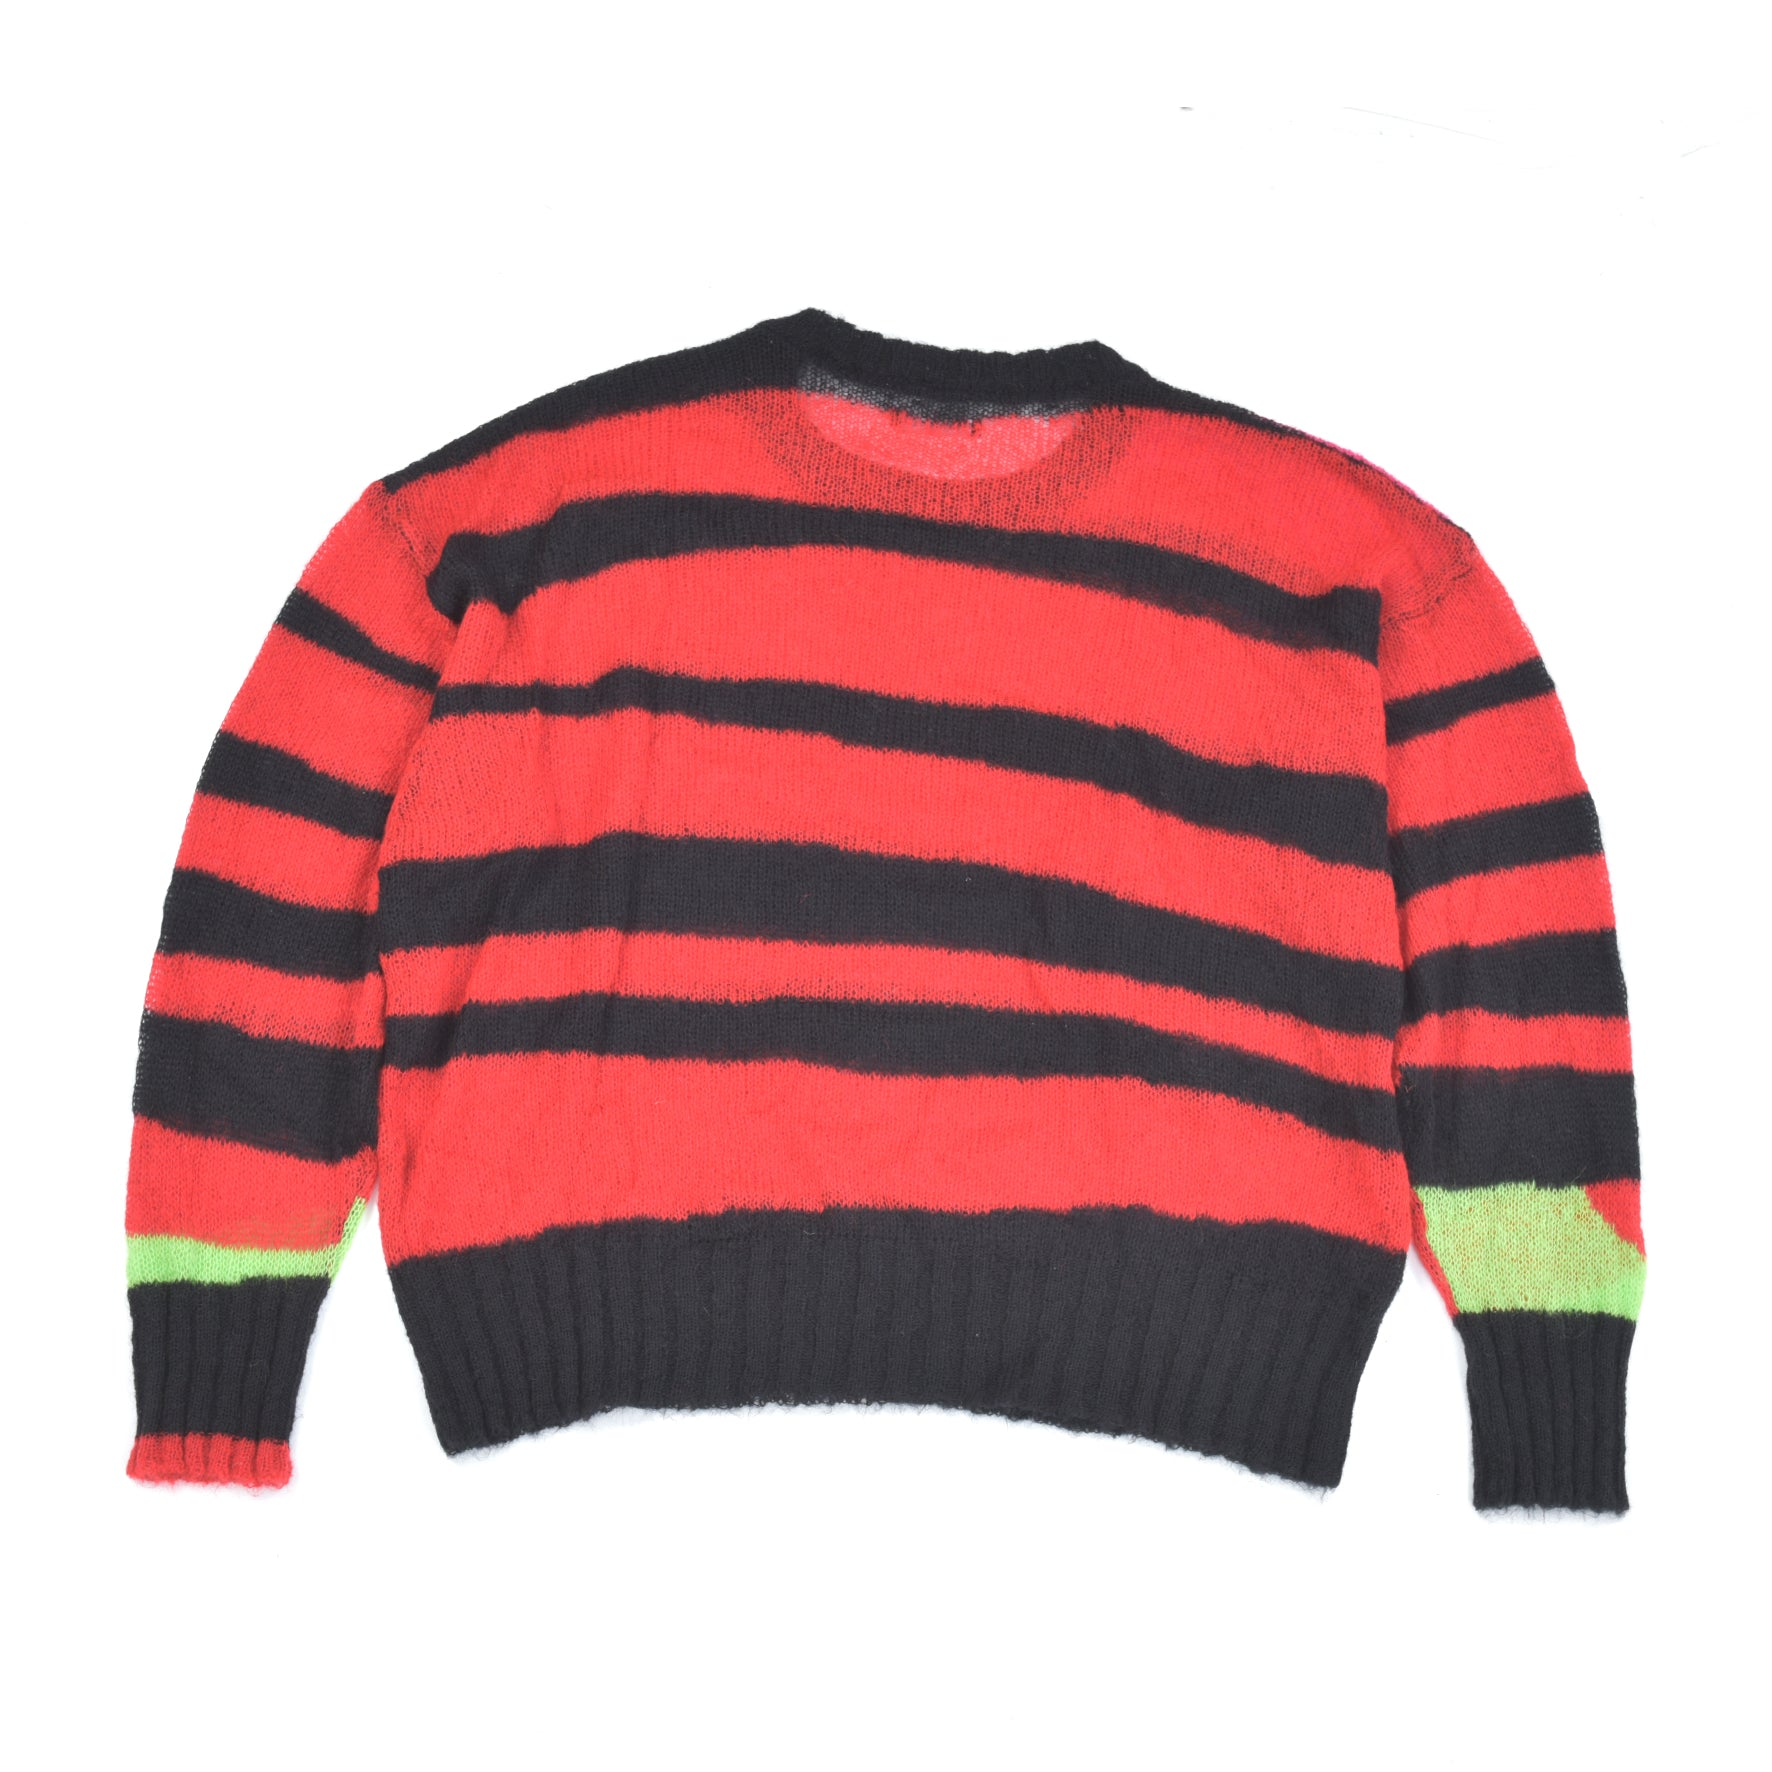 'SONIC' MOHAIR SWEATER